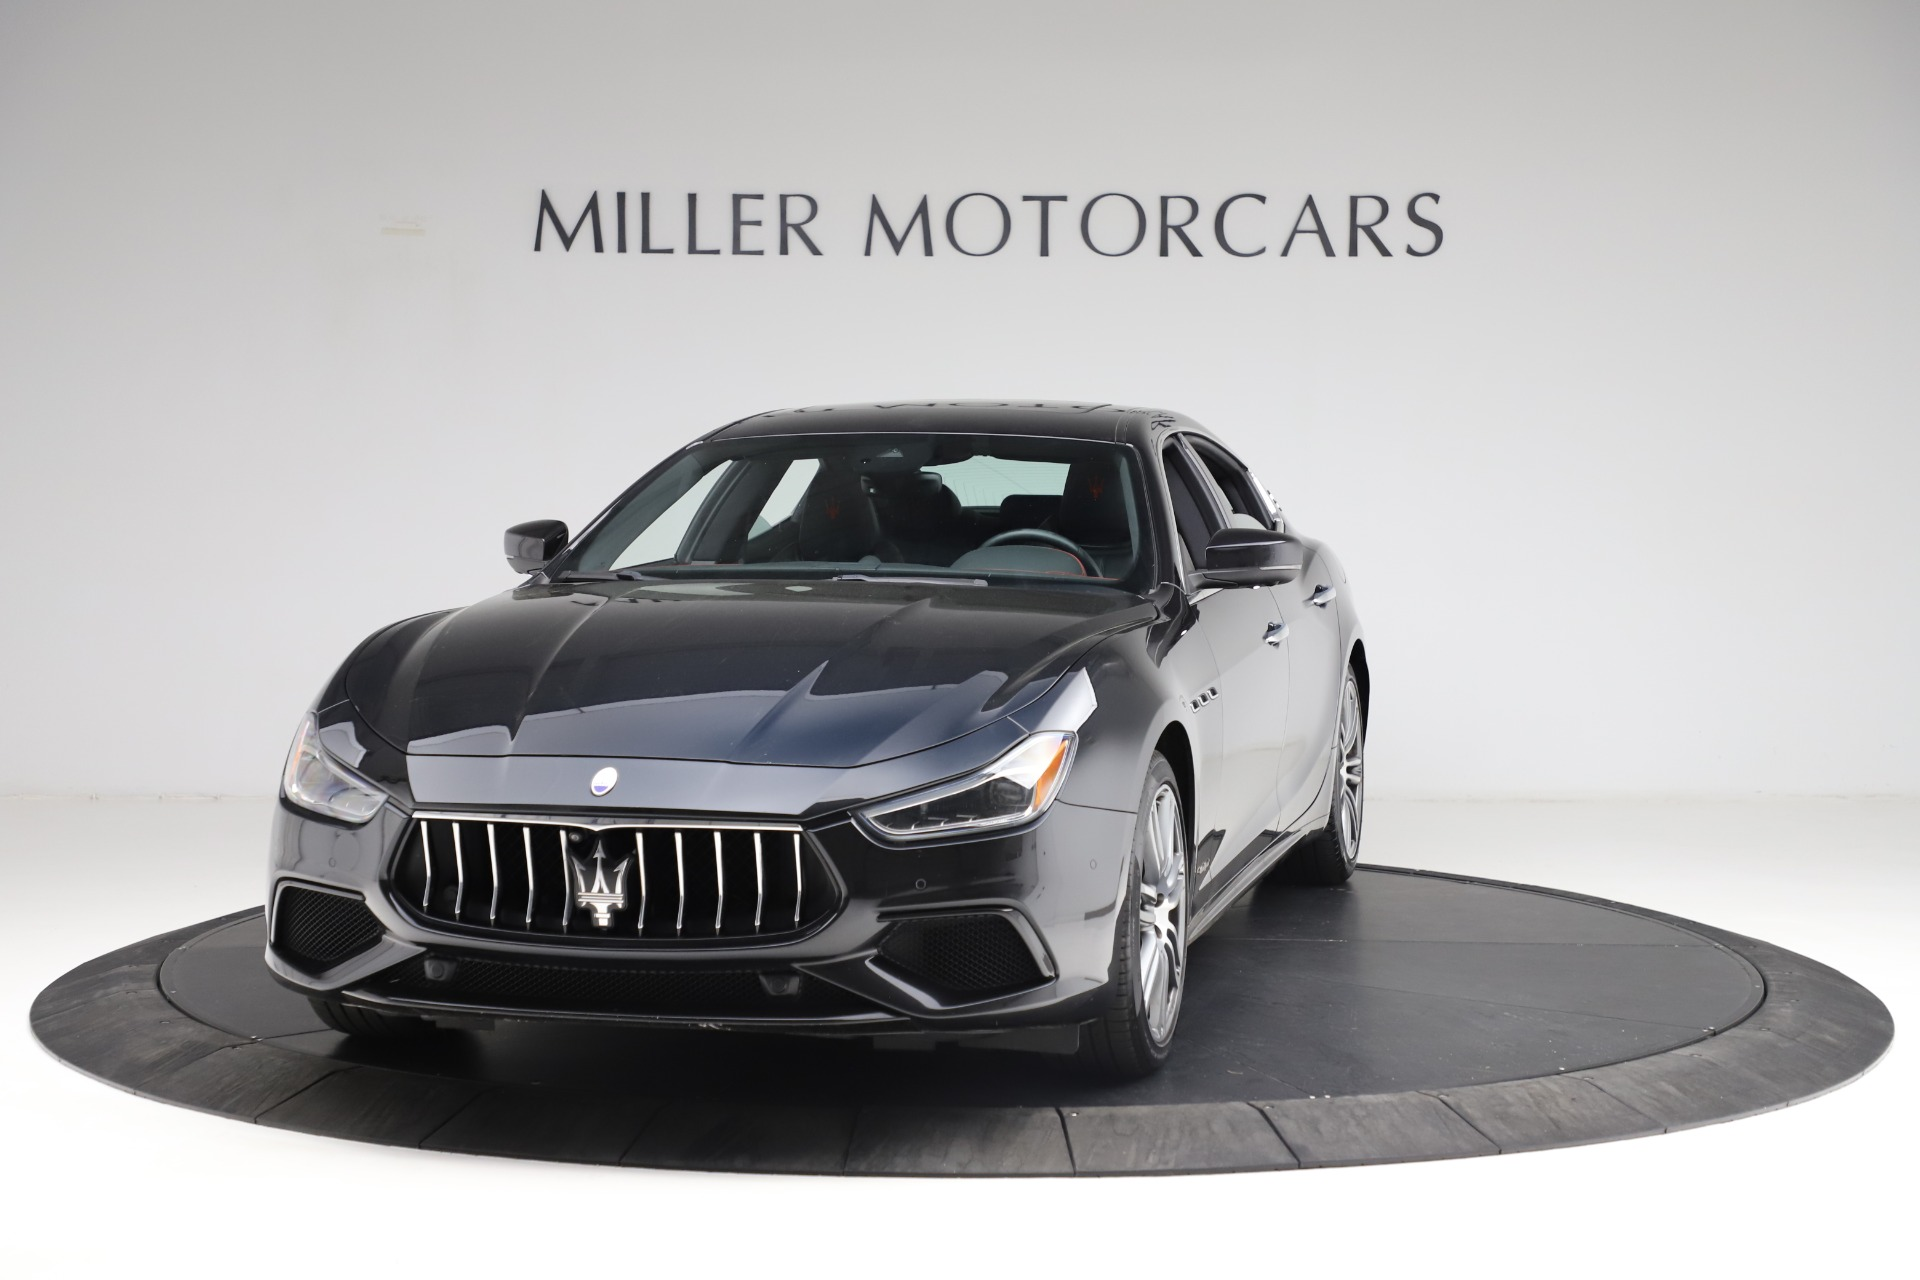 Used 2018 Maserati Ghibli S Q4 Gransport for sale $55,900 at Aston Martin of Greenwich in Greenwich CT 06830 1